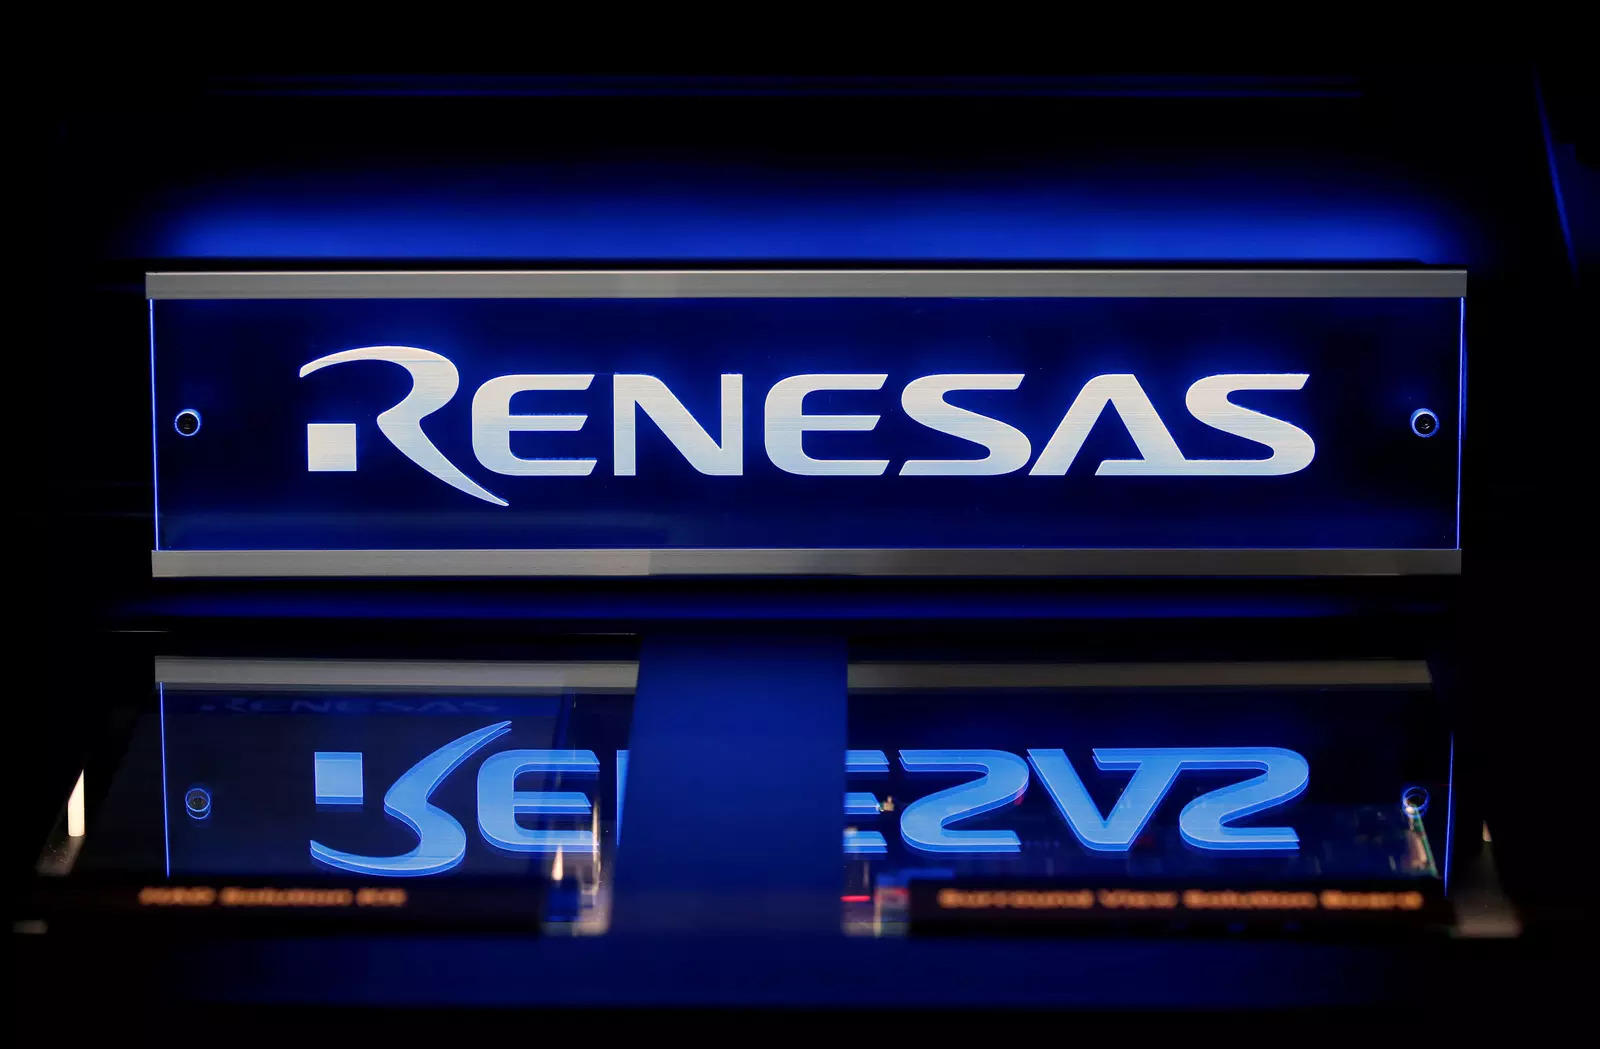 Renesas shares closed down 0.5% on Tuesday, mostly in line with the broader Japanese market.